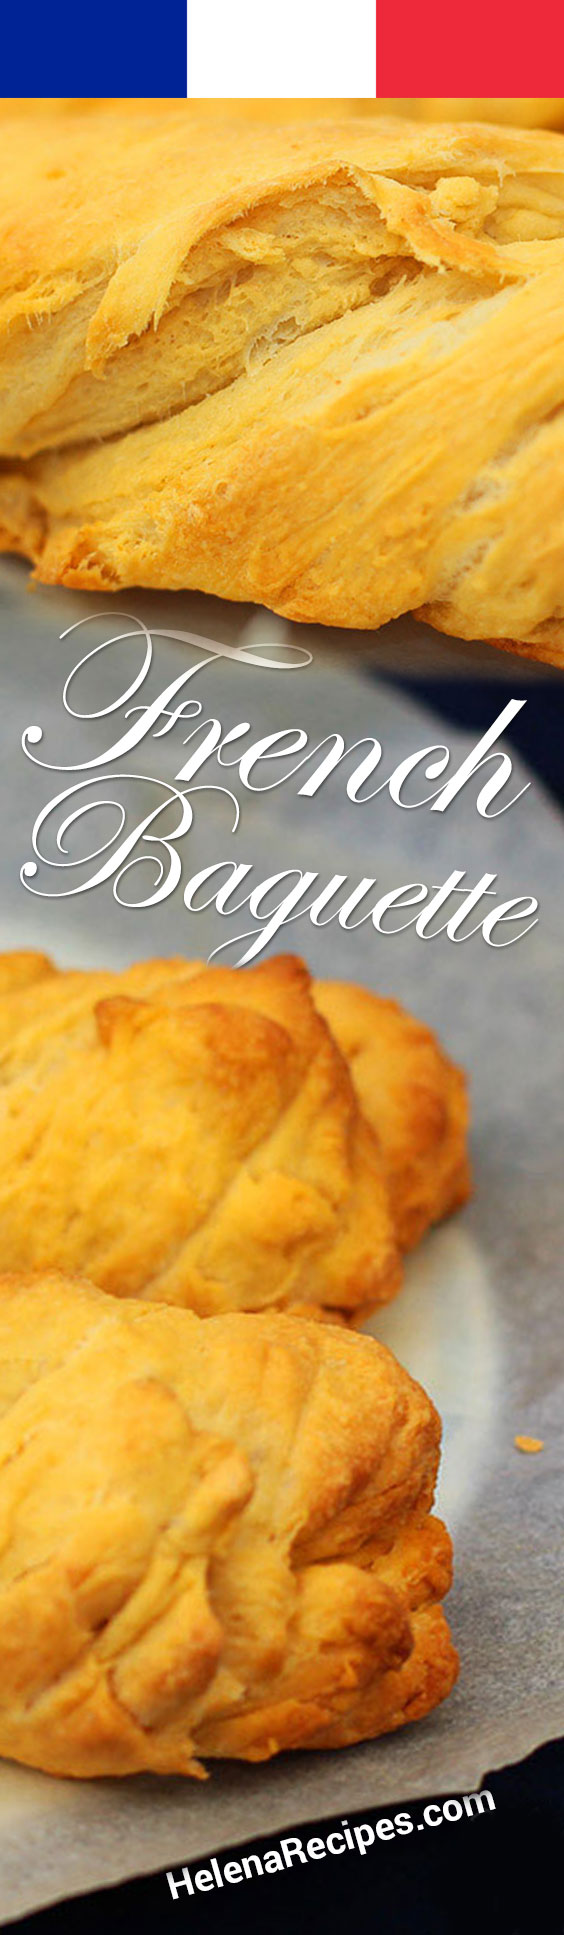 French-Baguette-Recipe-Pinterest-Image